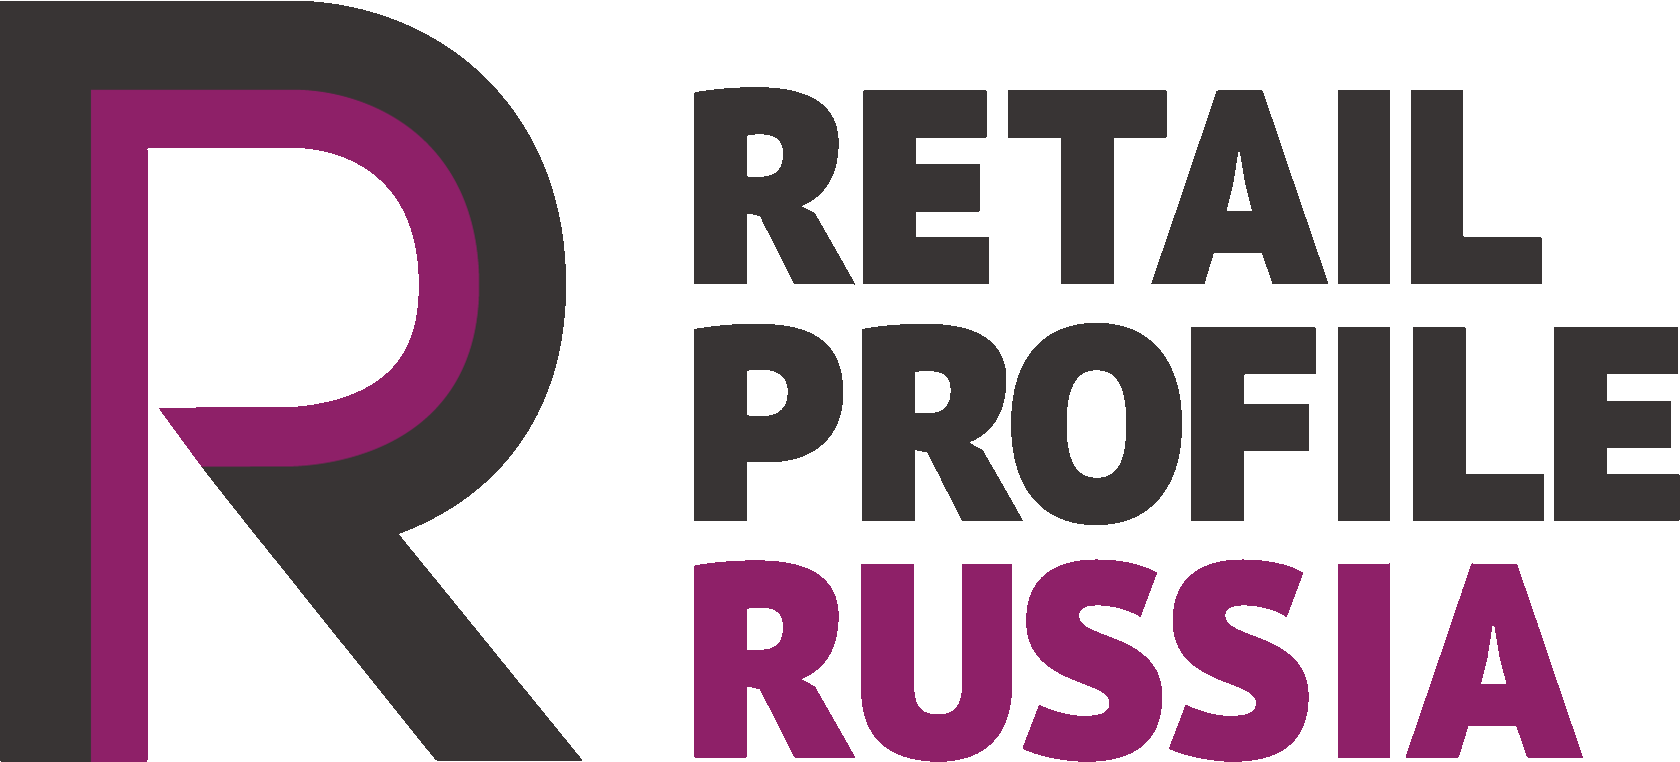 Retail Profile Russia